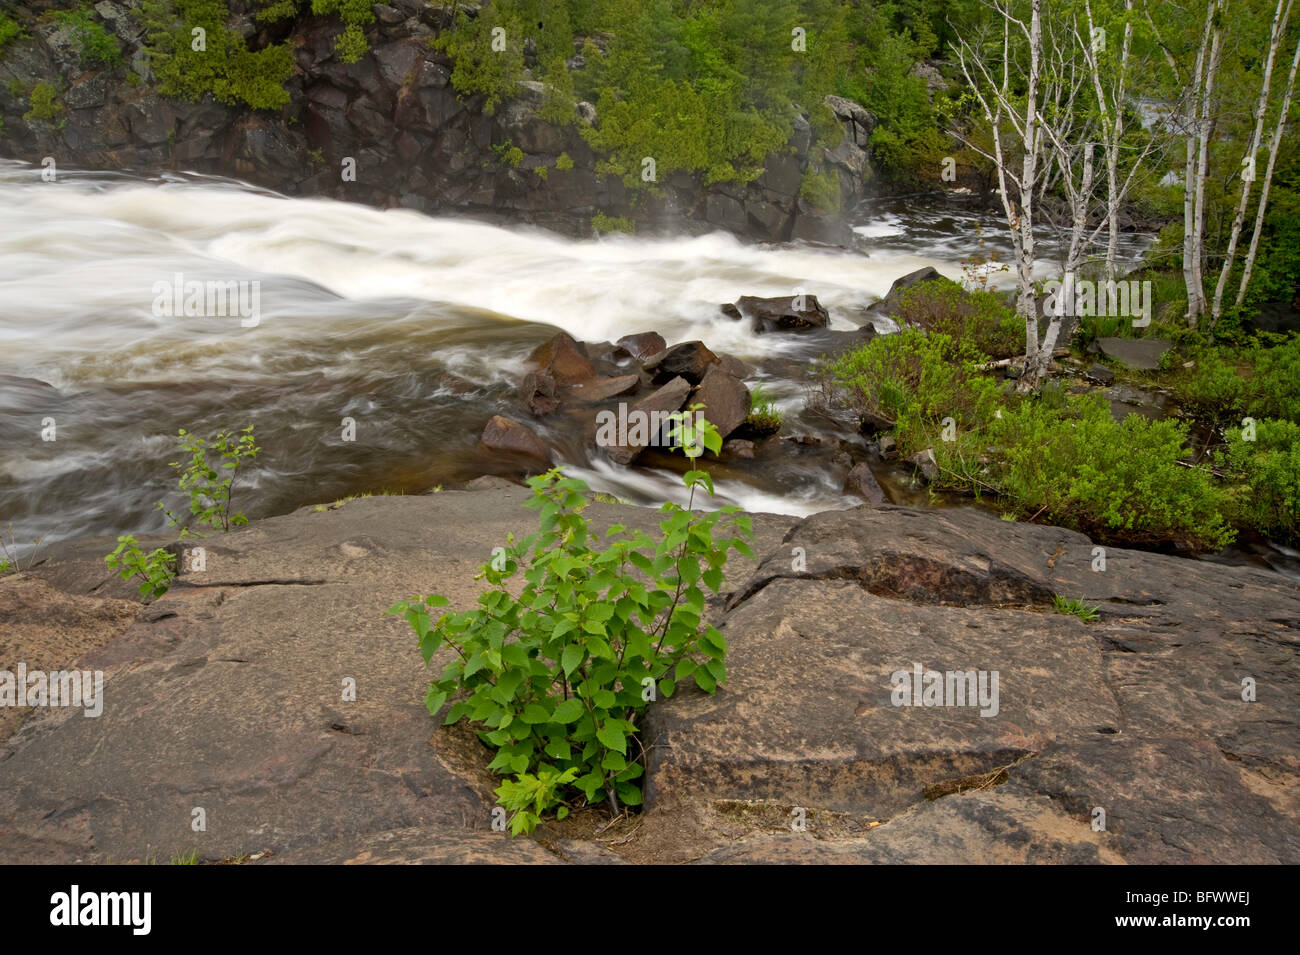 Rapids and standing waves in Onaping River above waterfall, Greater Sudbury, Ontario, Canada - Stock Image